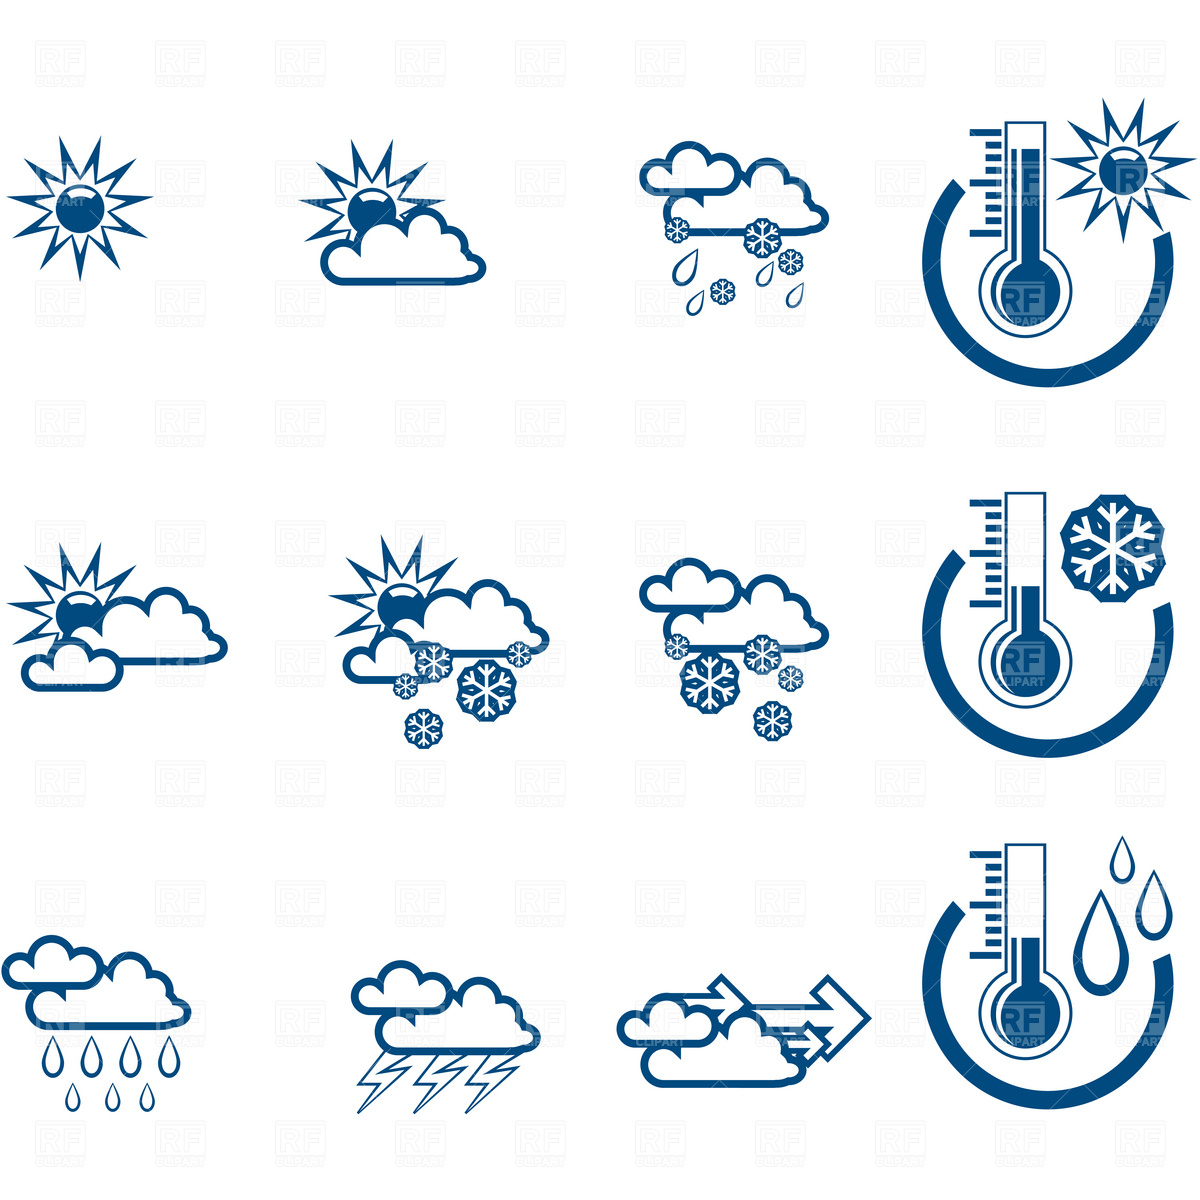 Simple weather forecast icons Vector Image #4590.